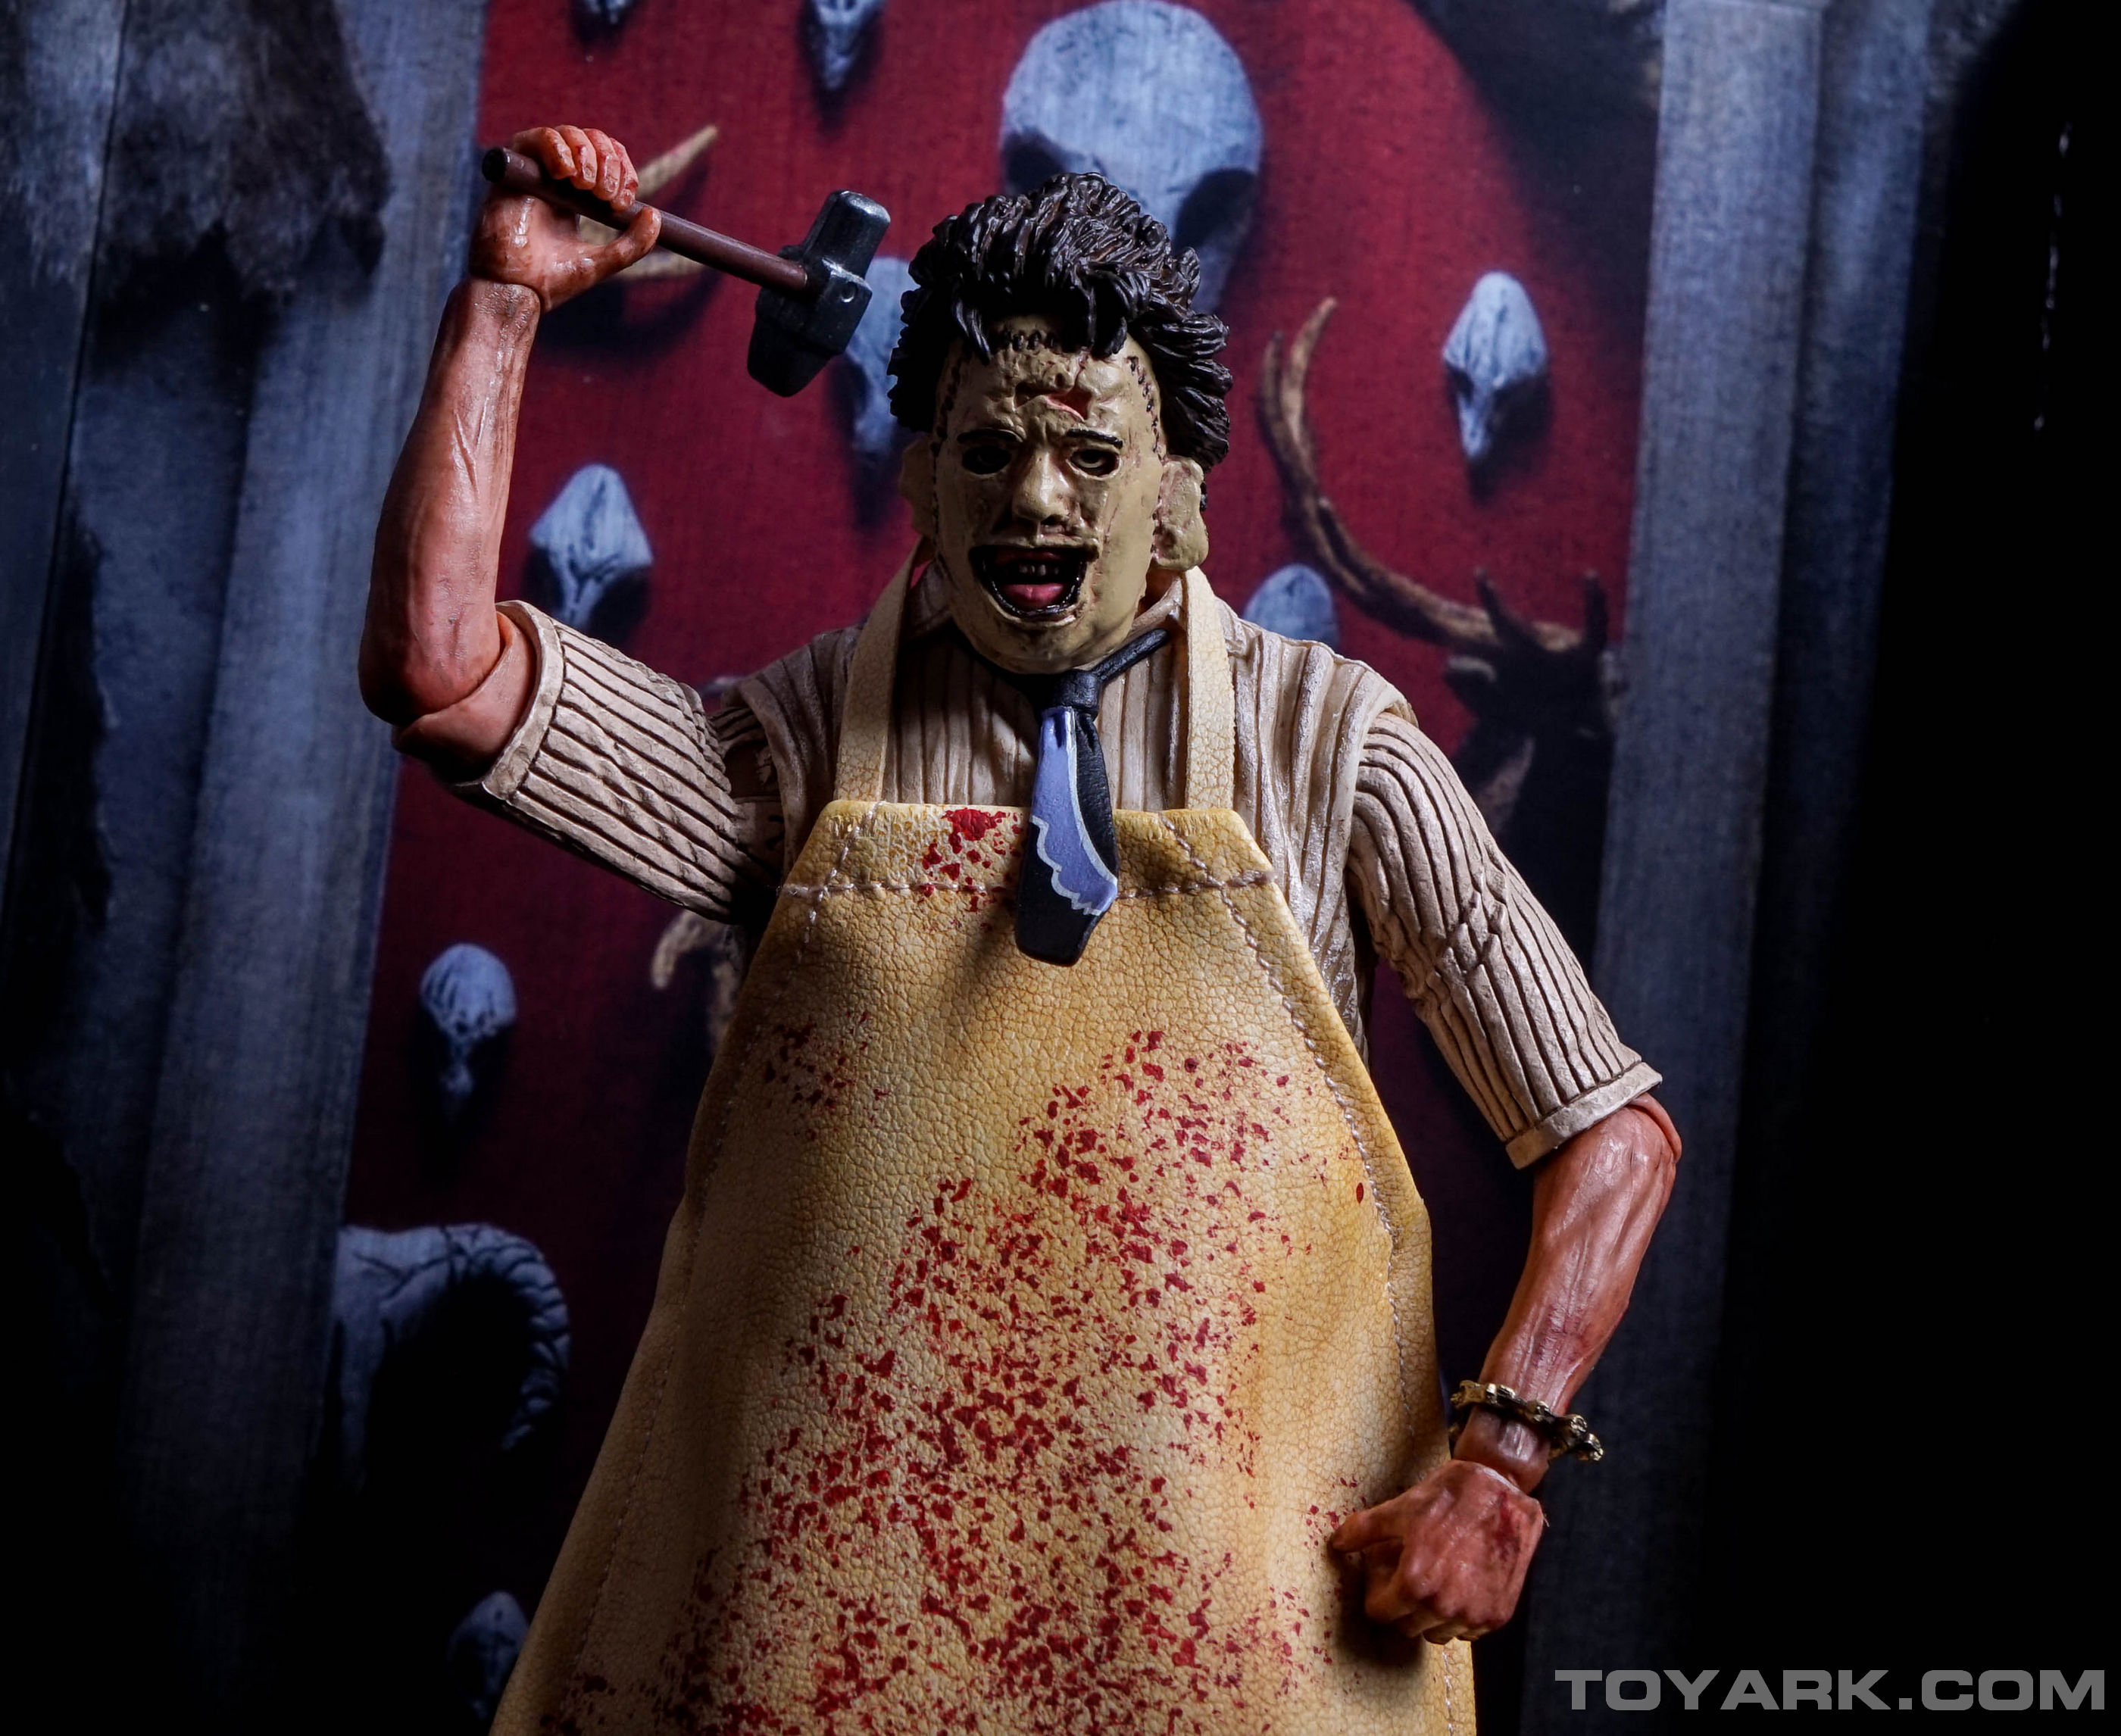 http://news.toyark.com/wp-content/uploads/sites/4/2015/08/NECA-TCM-Ultimate-Leatherface-064.jpg